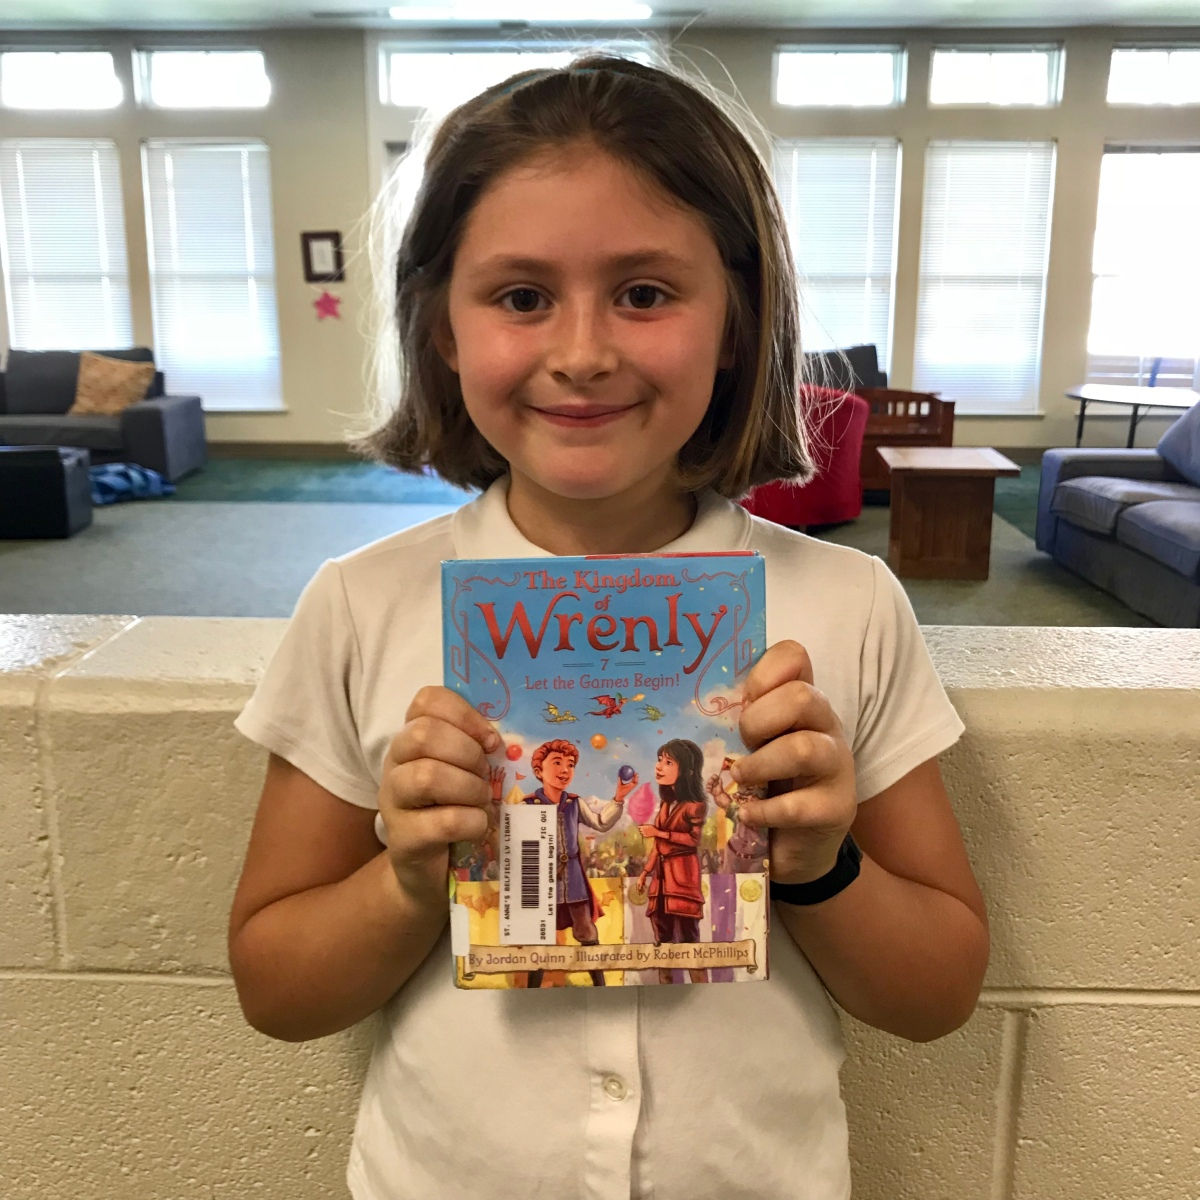 Fitz's Faves Jr: Amity's review of The Kingdom of Wrenly, book 7, by Jordan Quinn